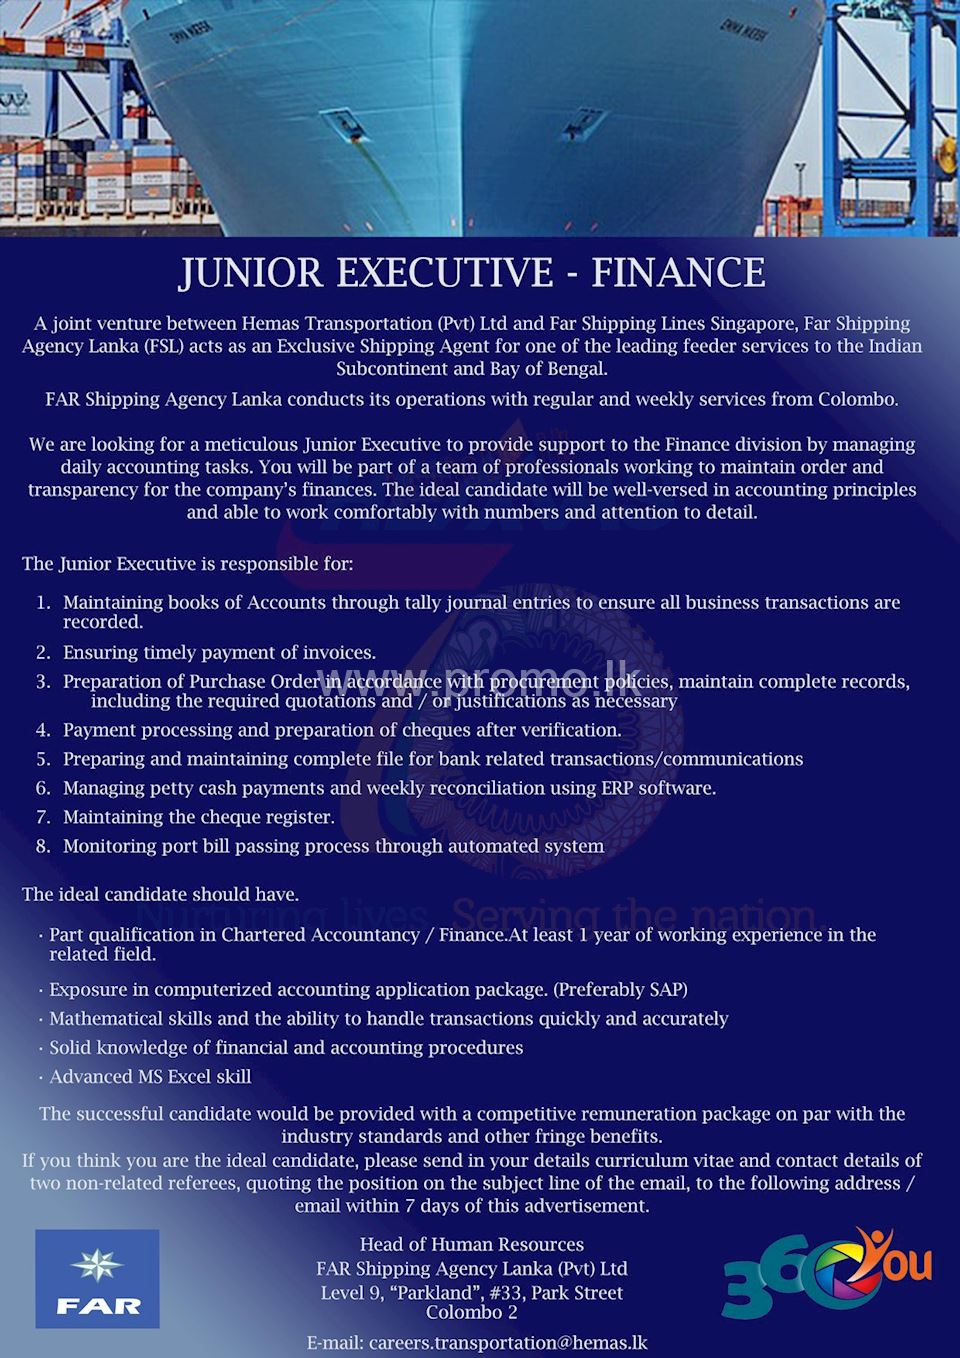 Junior Executive - Finance